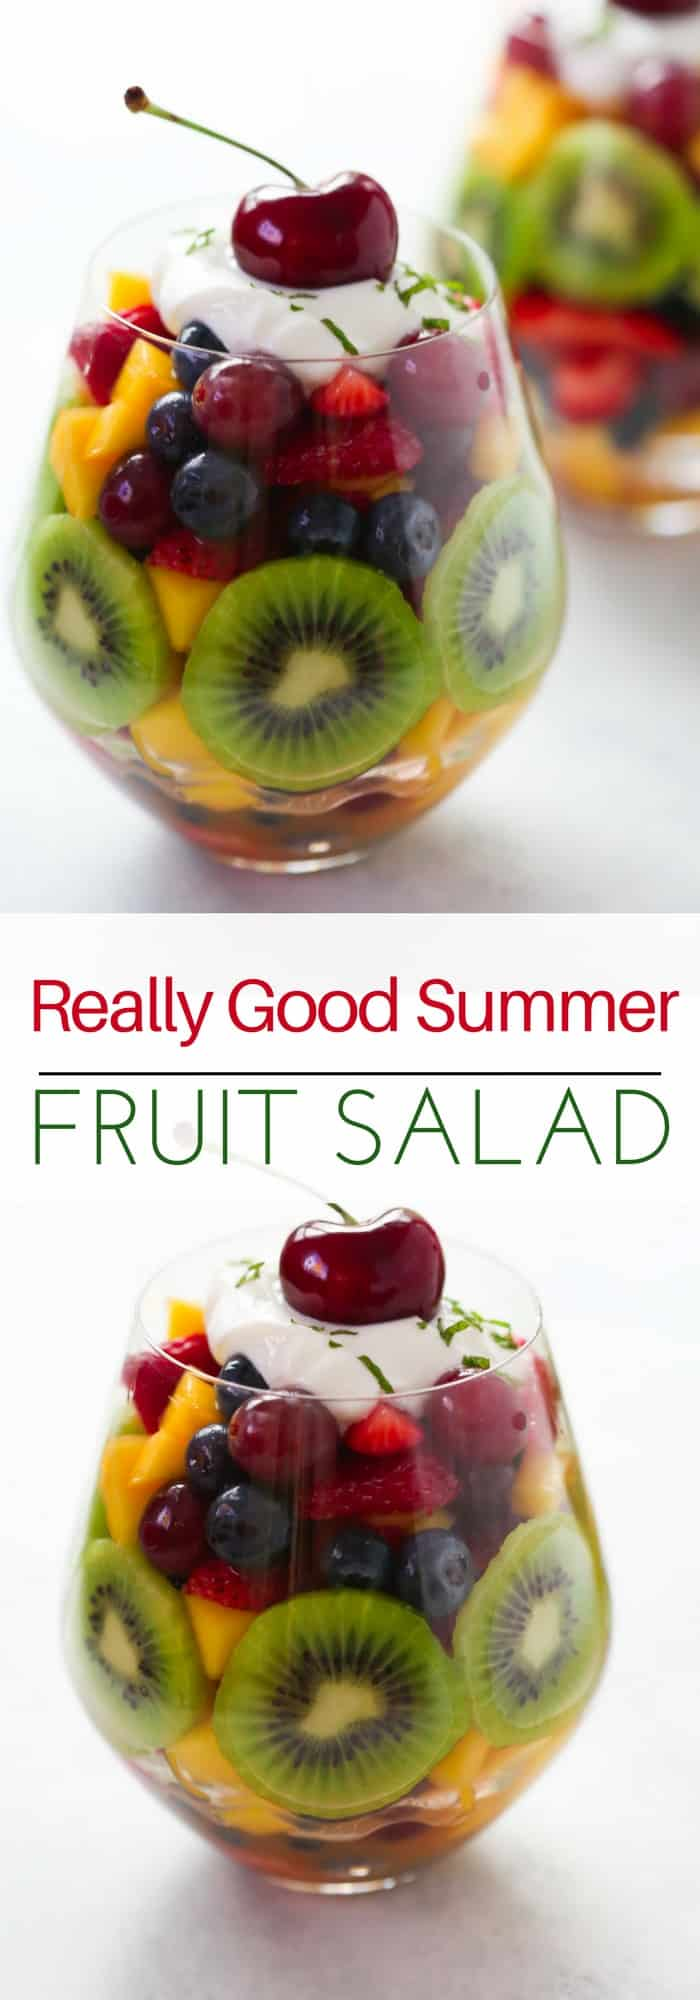 This Really Good Summer Fruit Salad is the perfect healthy and delicious summer treat or snack for you. It's made with blueberry, mango, kiwi, grapes and fresh orange juice.